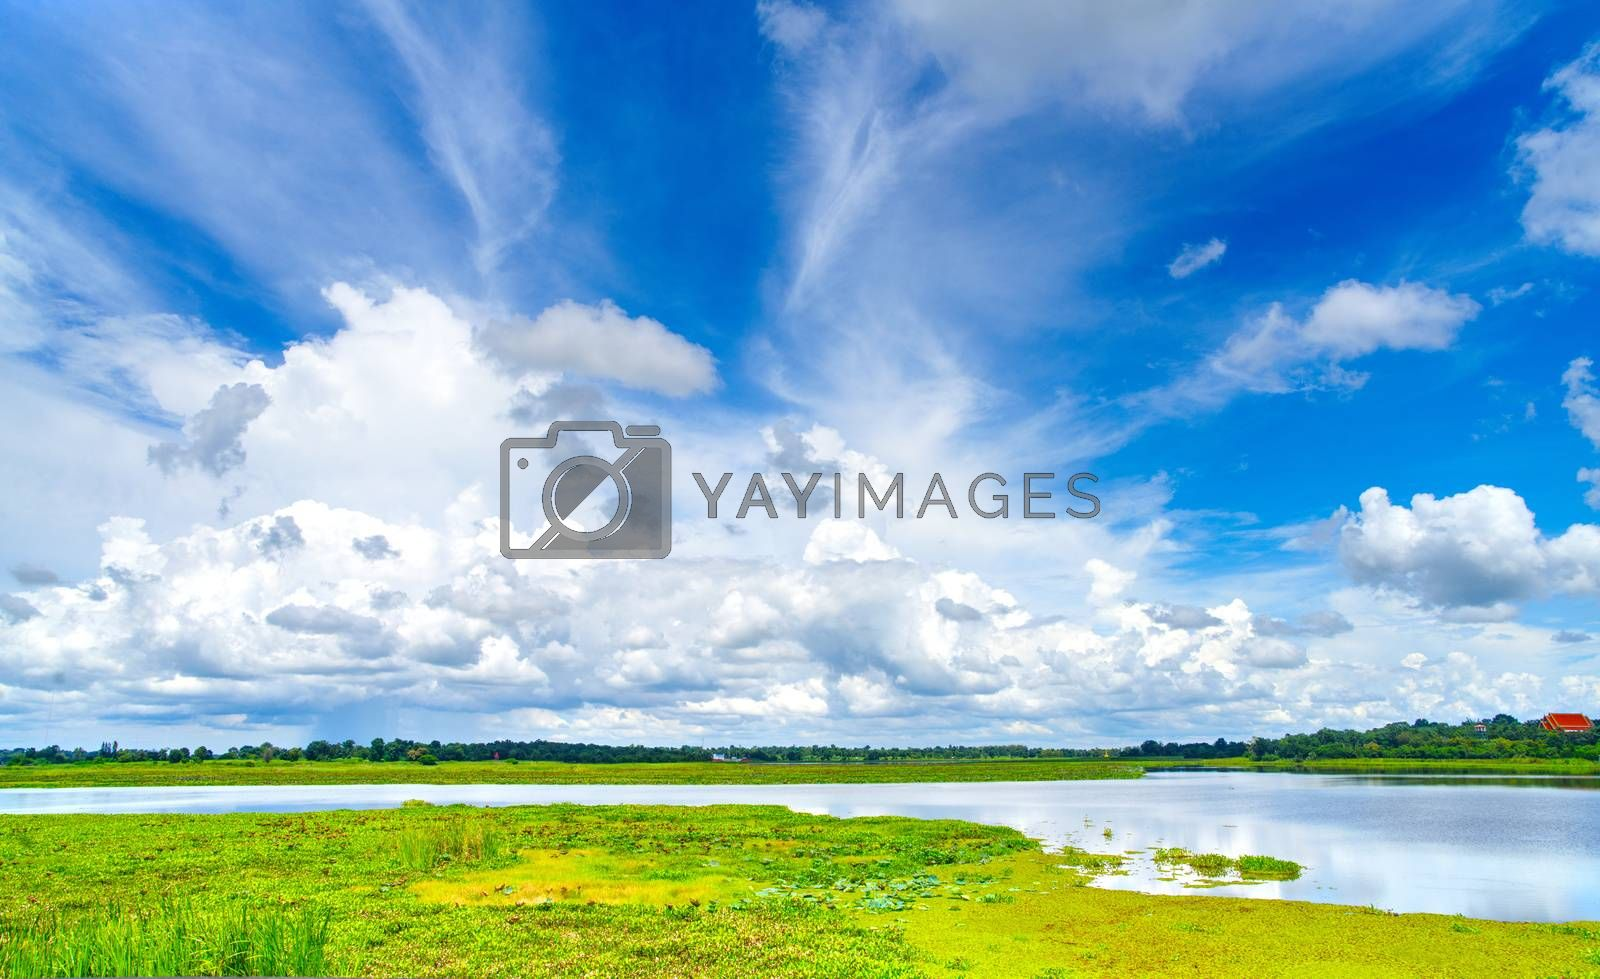 The sights of the reservoir are densely covered with cloudy skies, the atmosphere of the sky during the day.